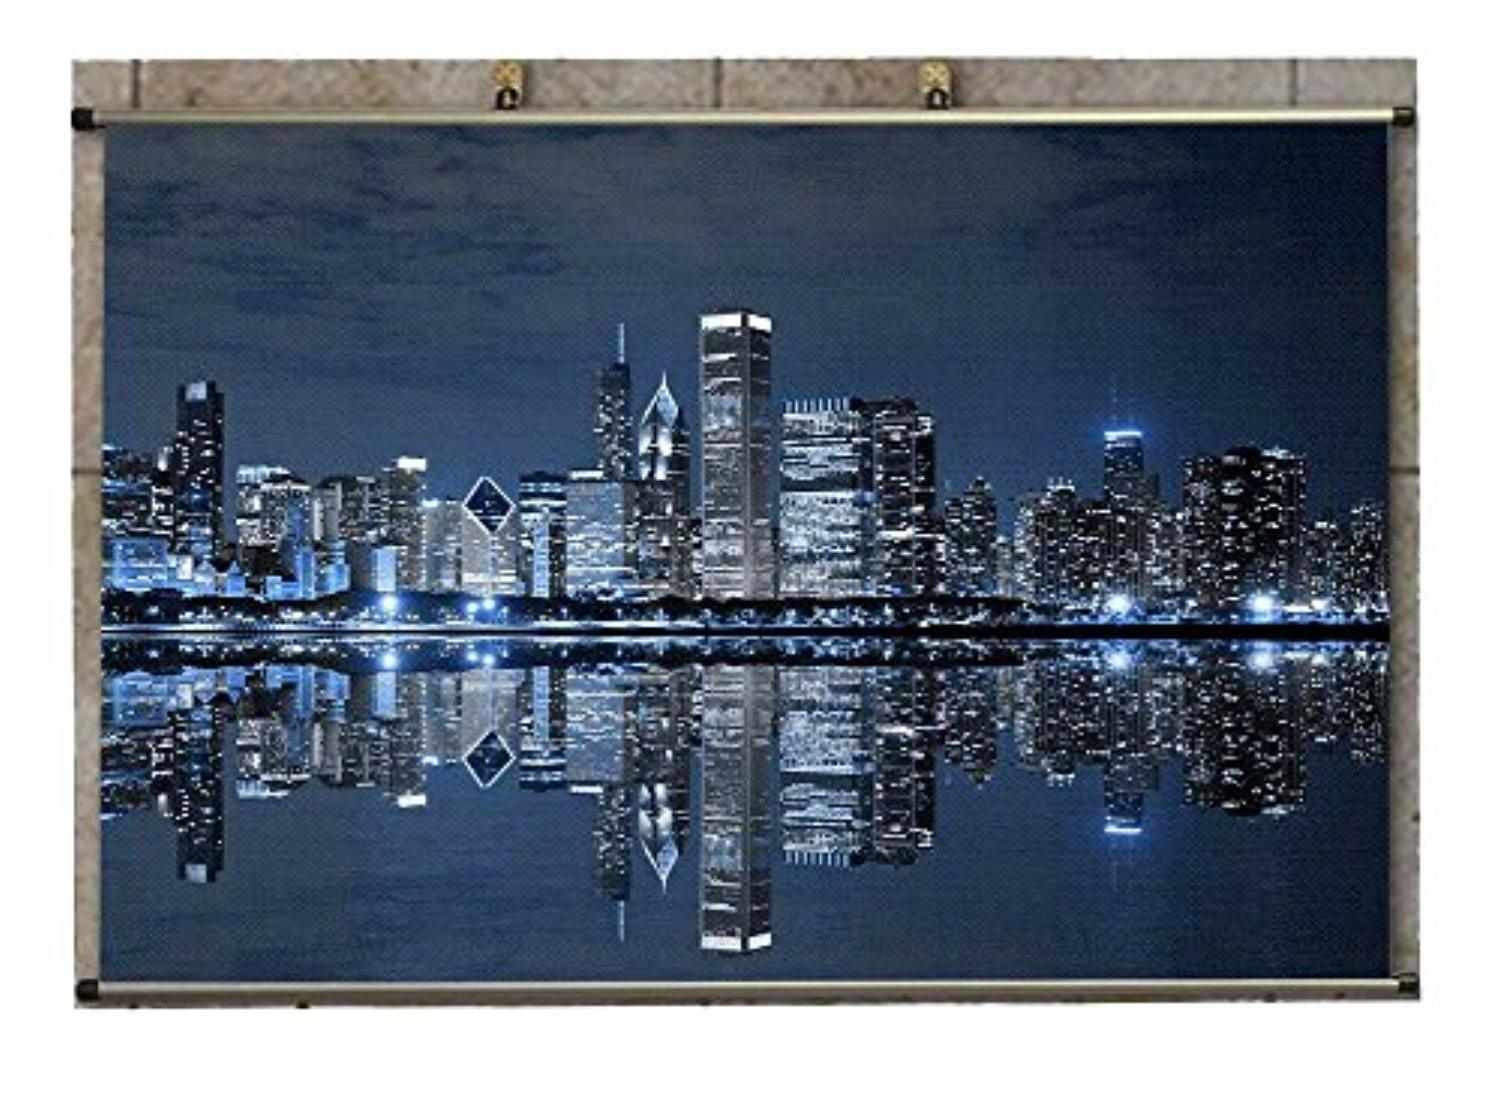 Canvas Wall Scroll Poster (32x20 inches) Man Made Chicago RYDK_437679 - Brought to you by Avarsha.com